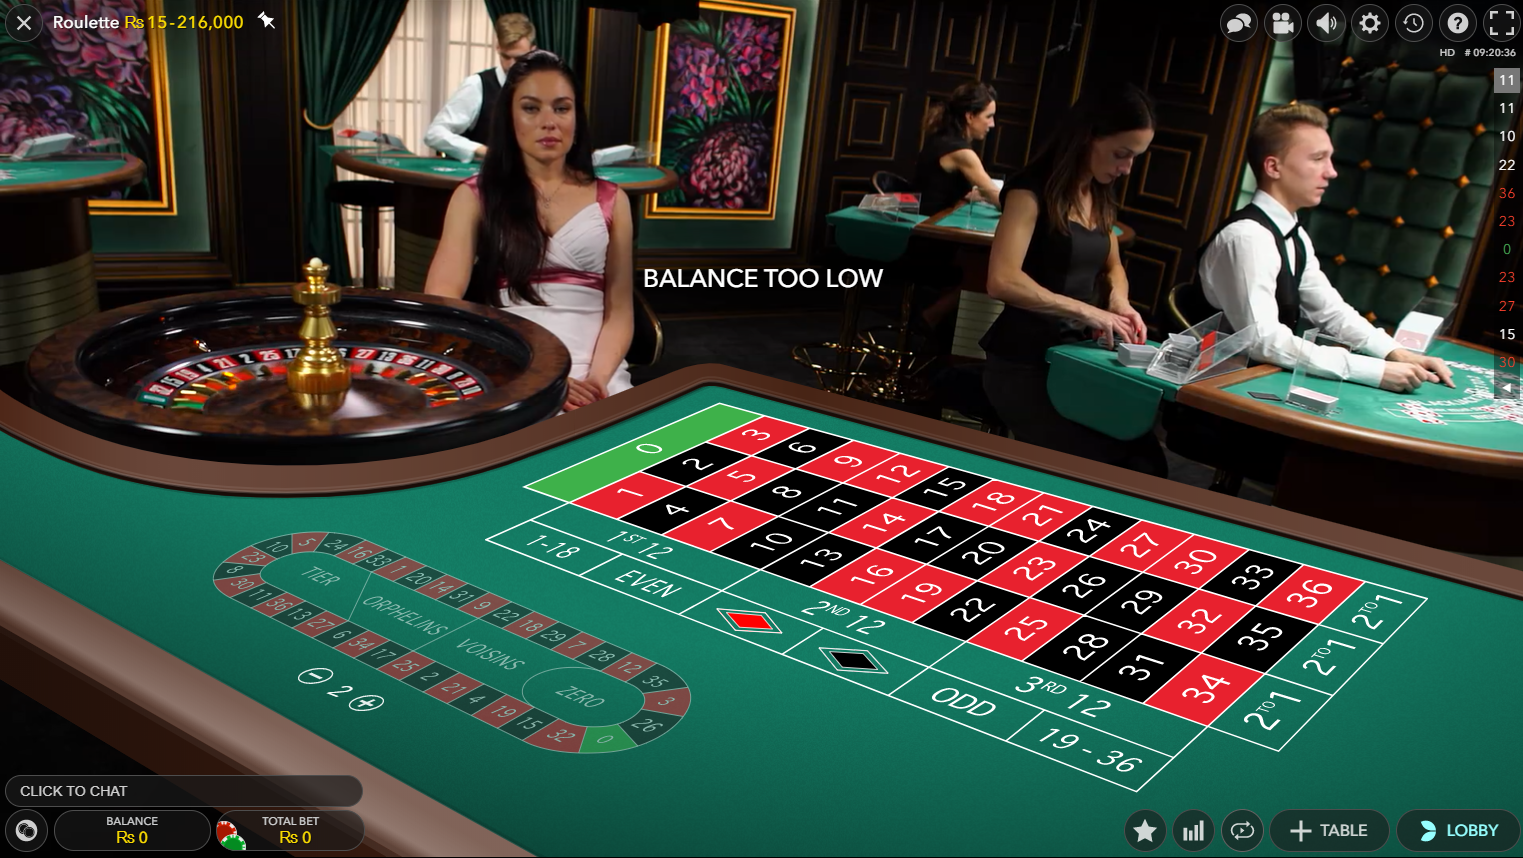 Live roulette with 3d view on mobile